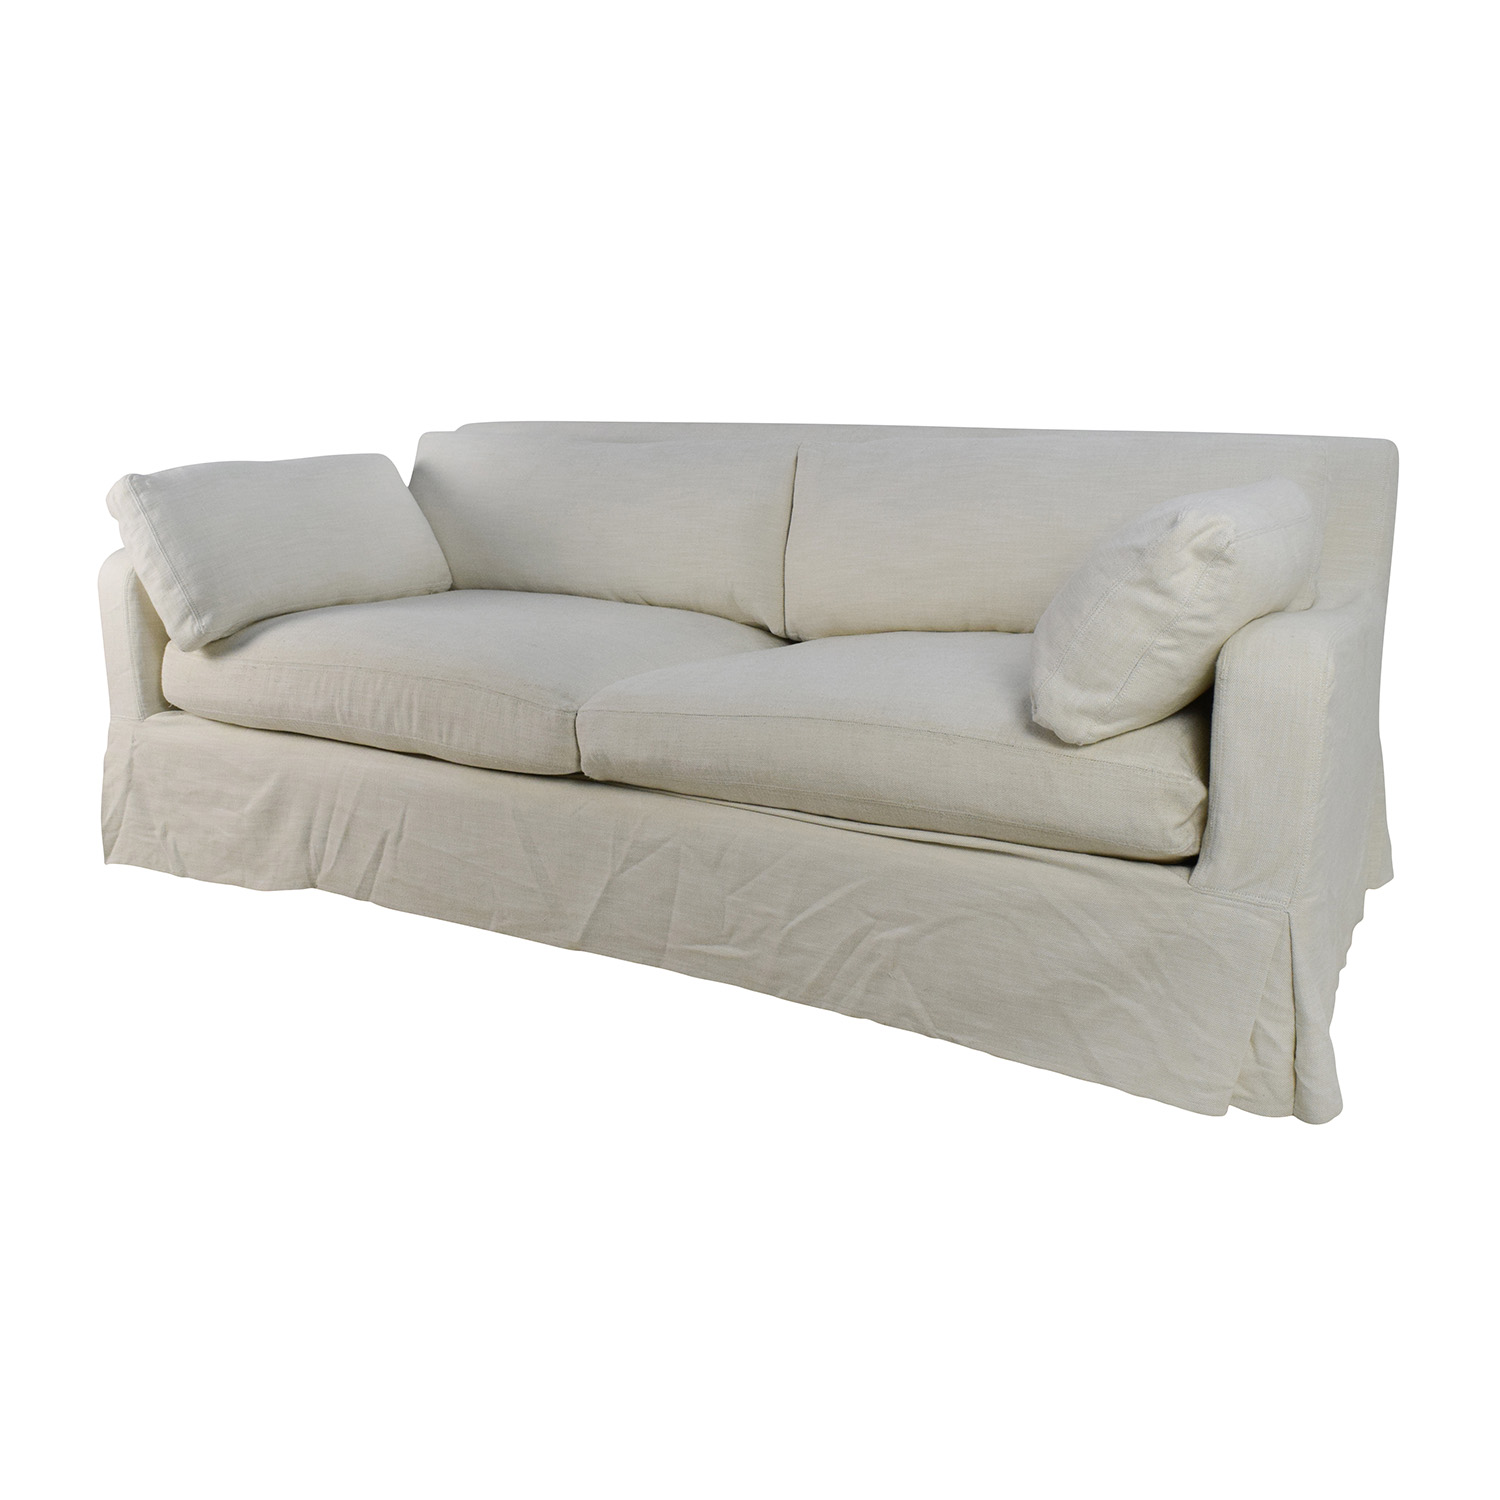 Restoration Hardware Sofa Slipcover Restoration Hardware Slipcovers Home Furniture Design